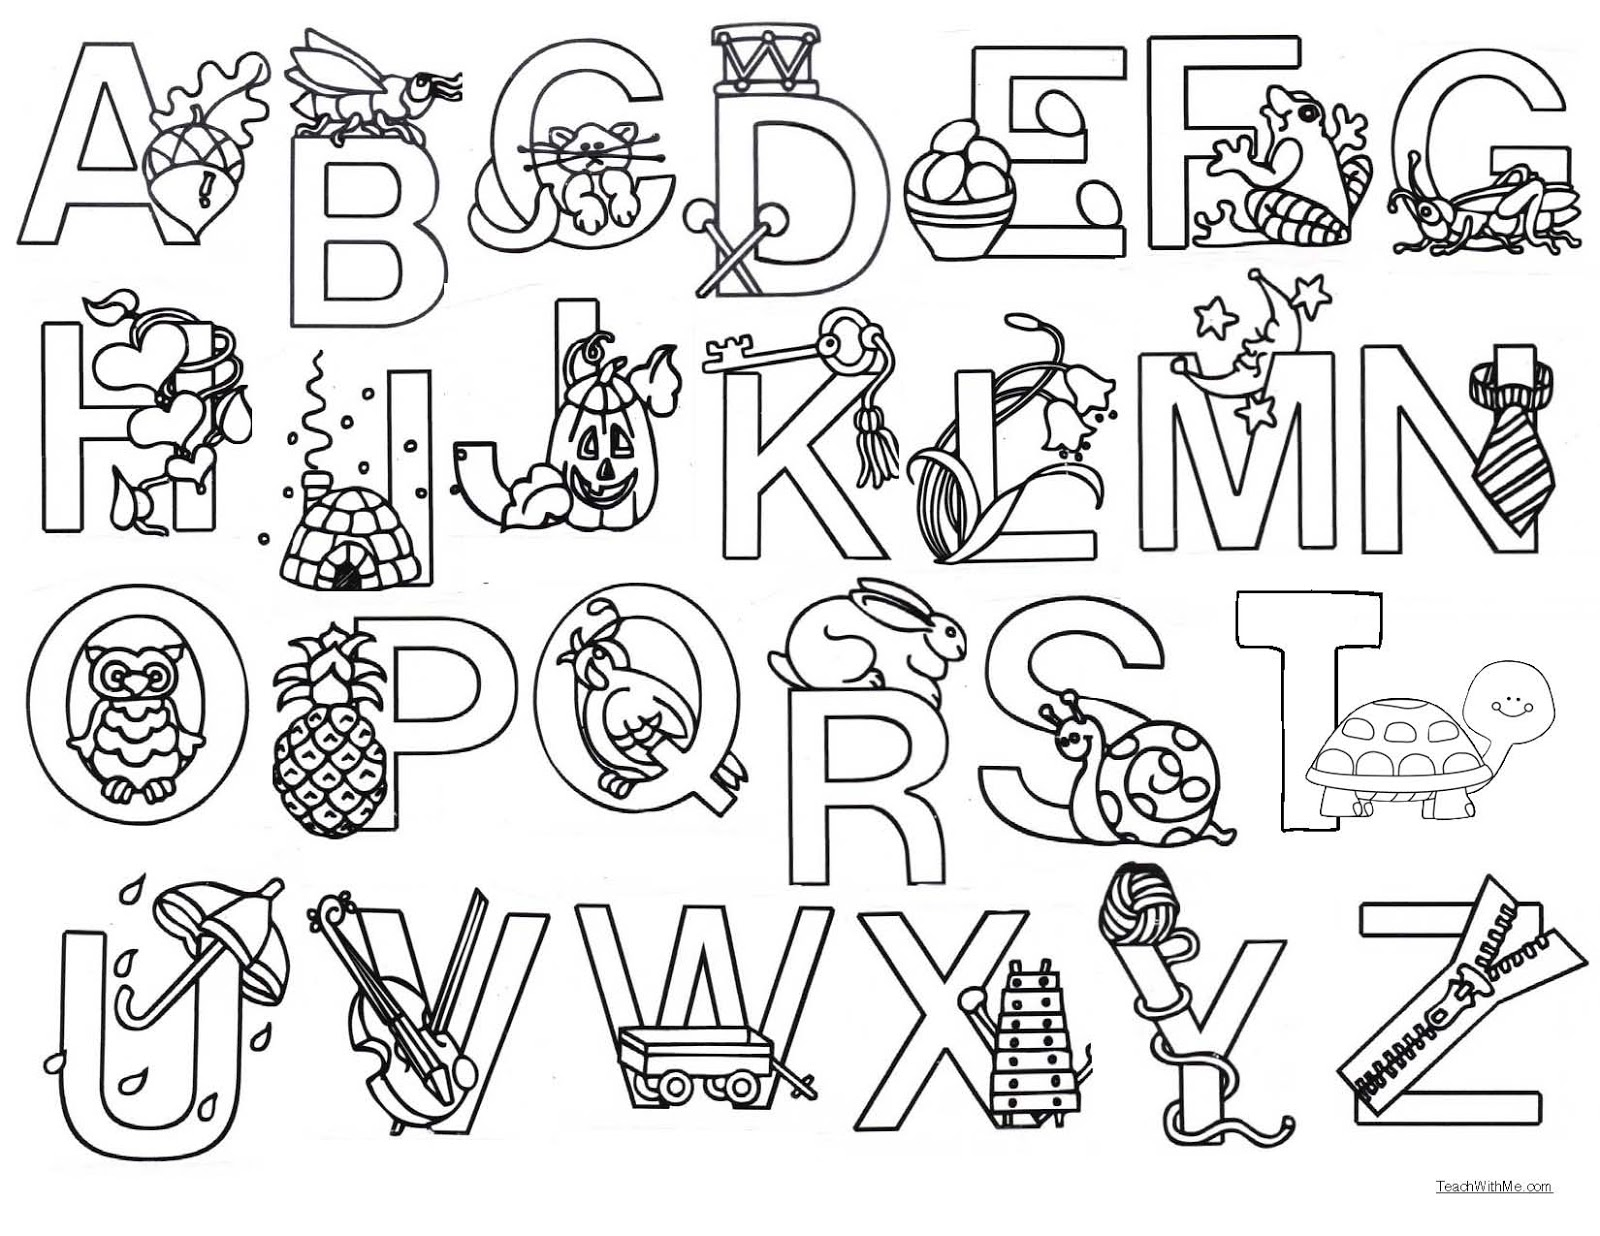 Color Me alphabet poster - Classroom Freebies